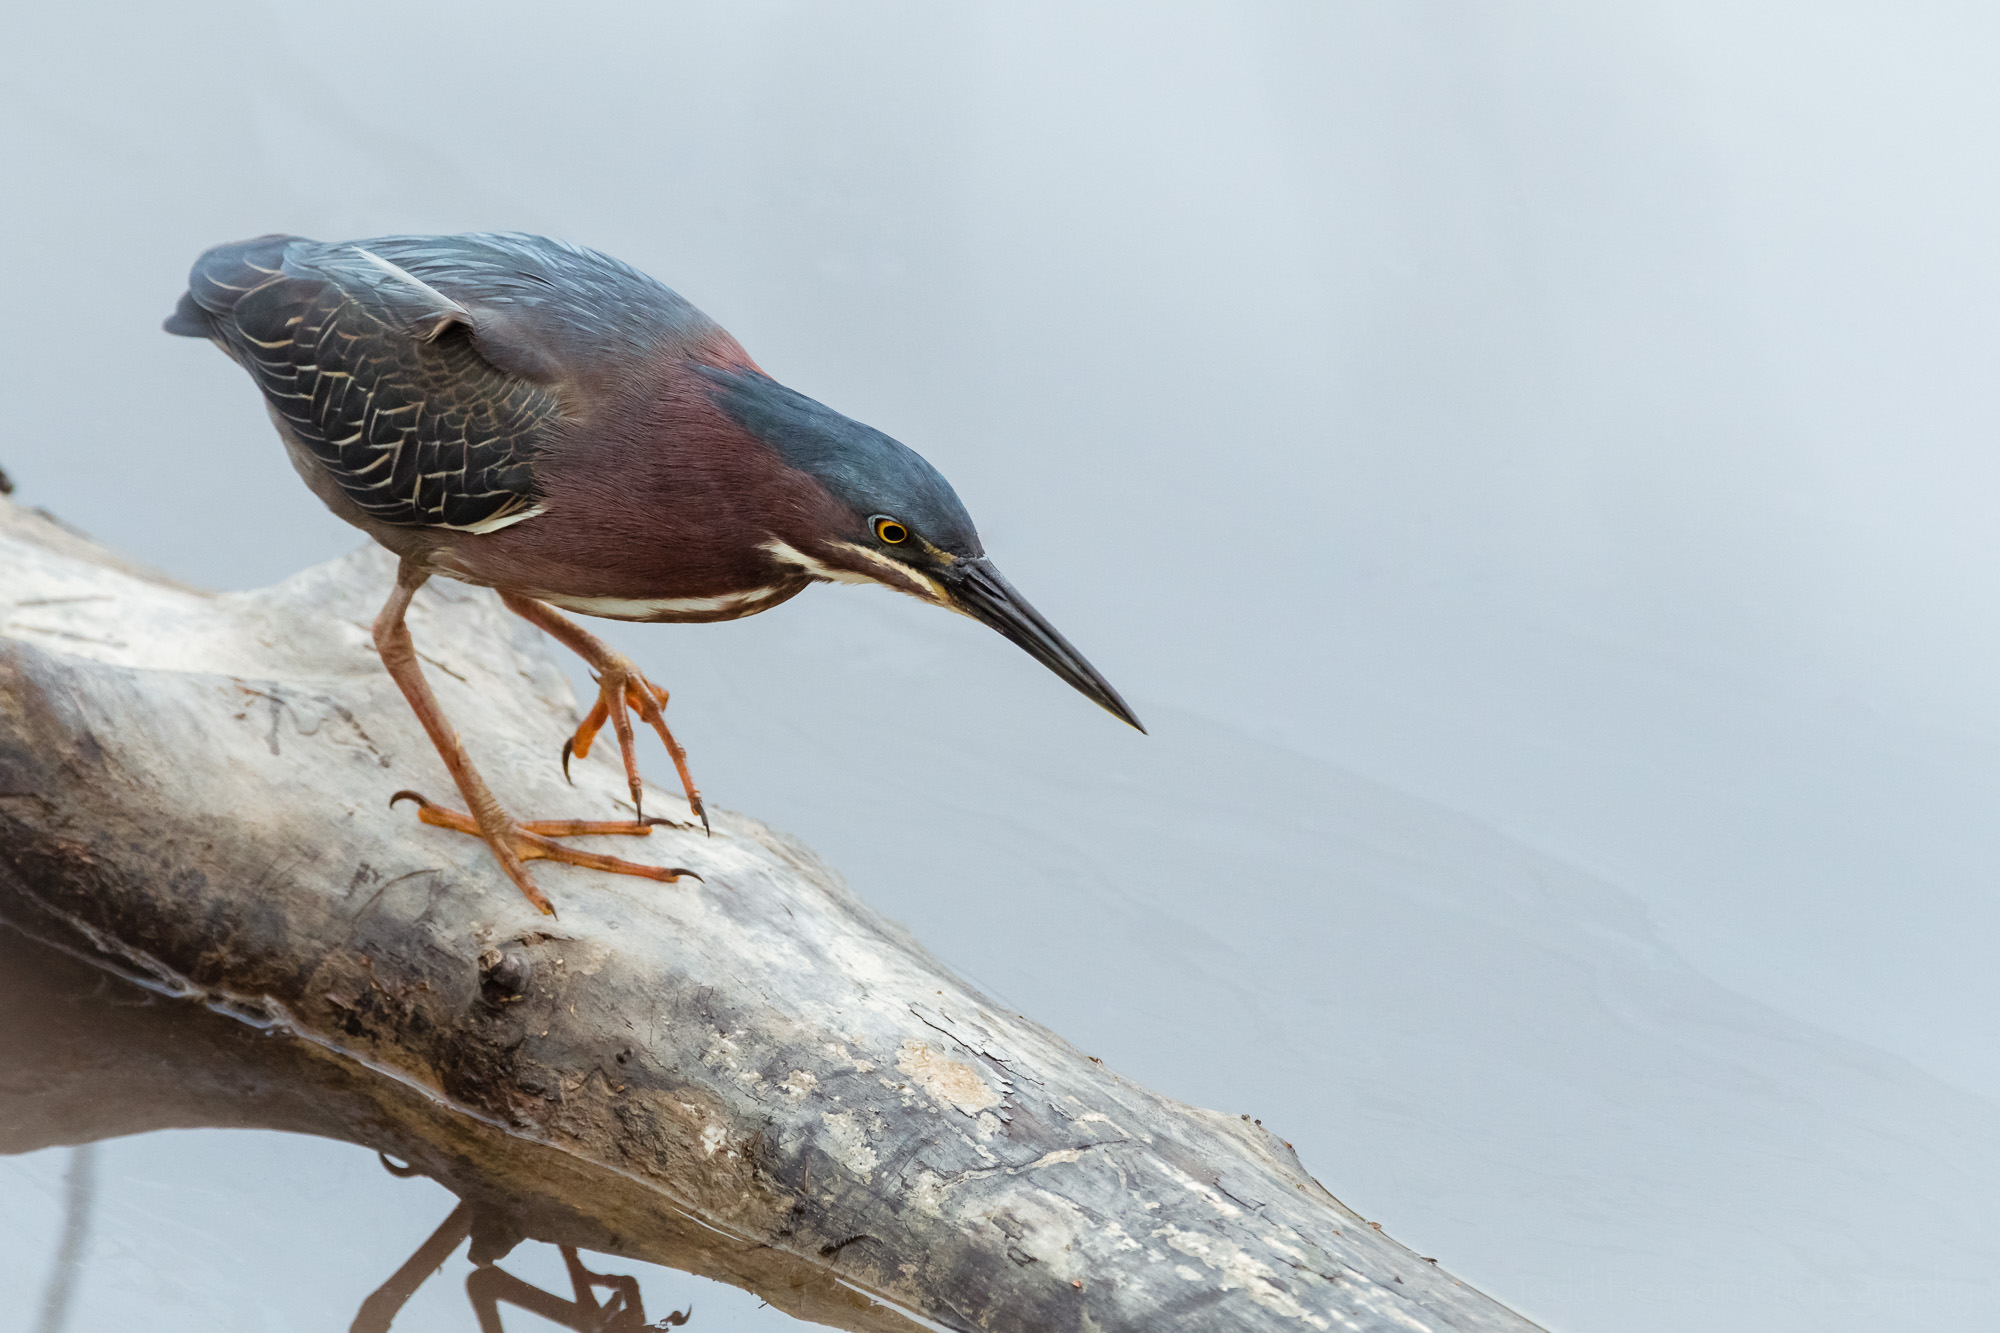 Focus: A Green Heron walking along a downed tree looking for its next meal.